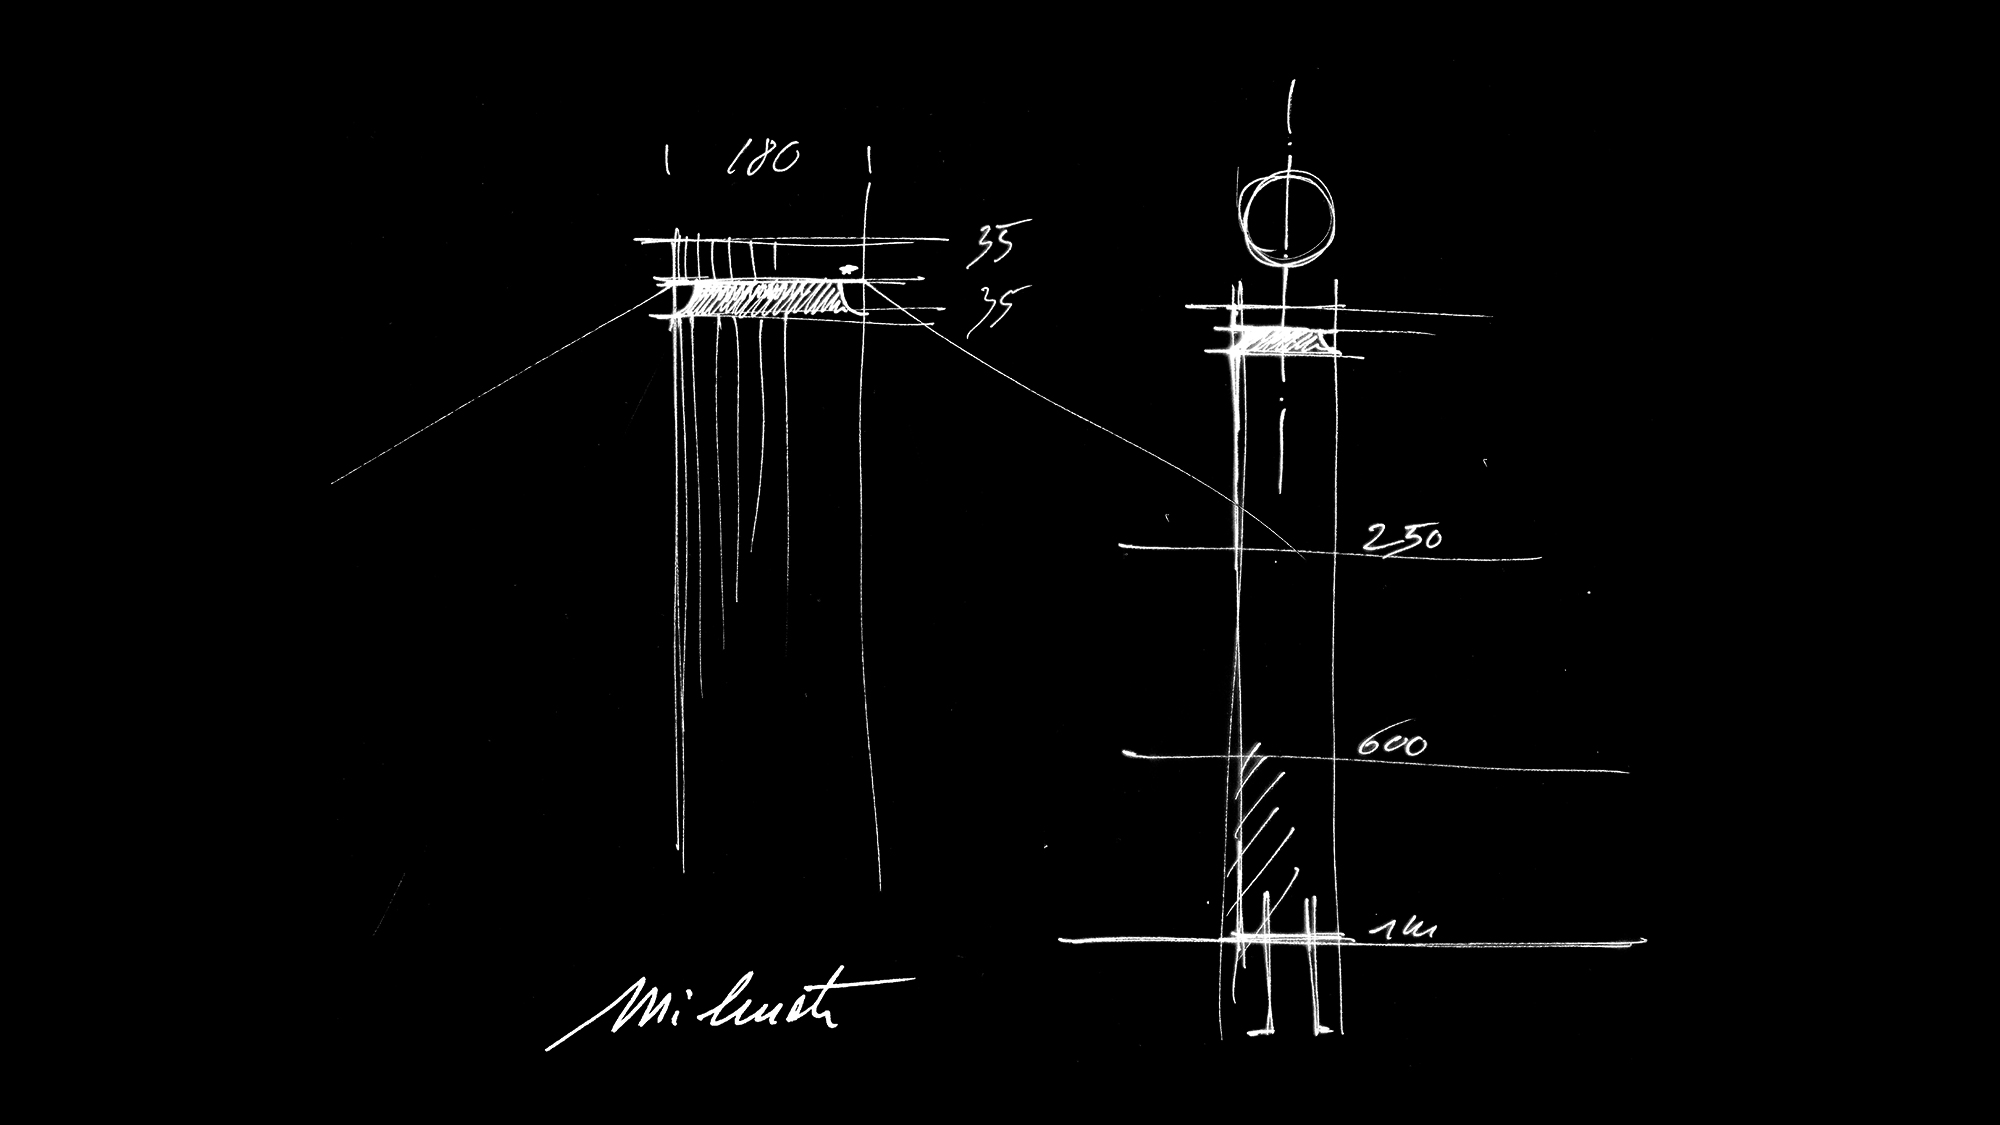 iWay drawing by J. M. Wilmotte for iGuzzini